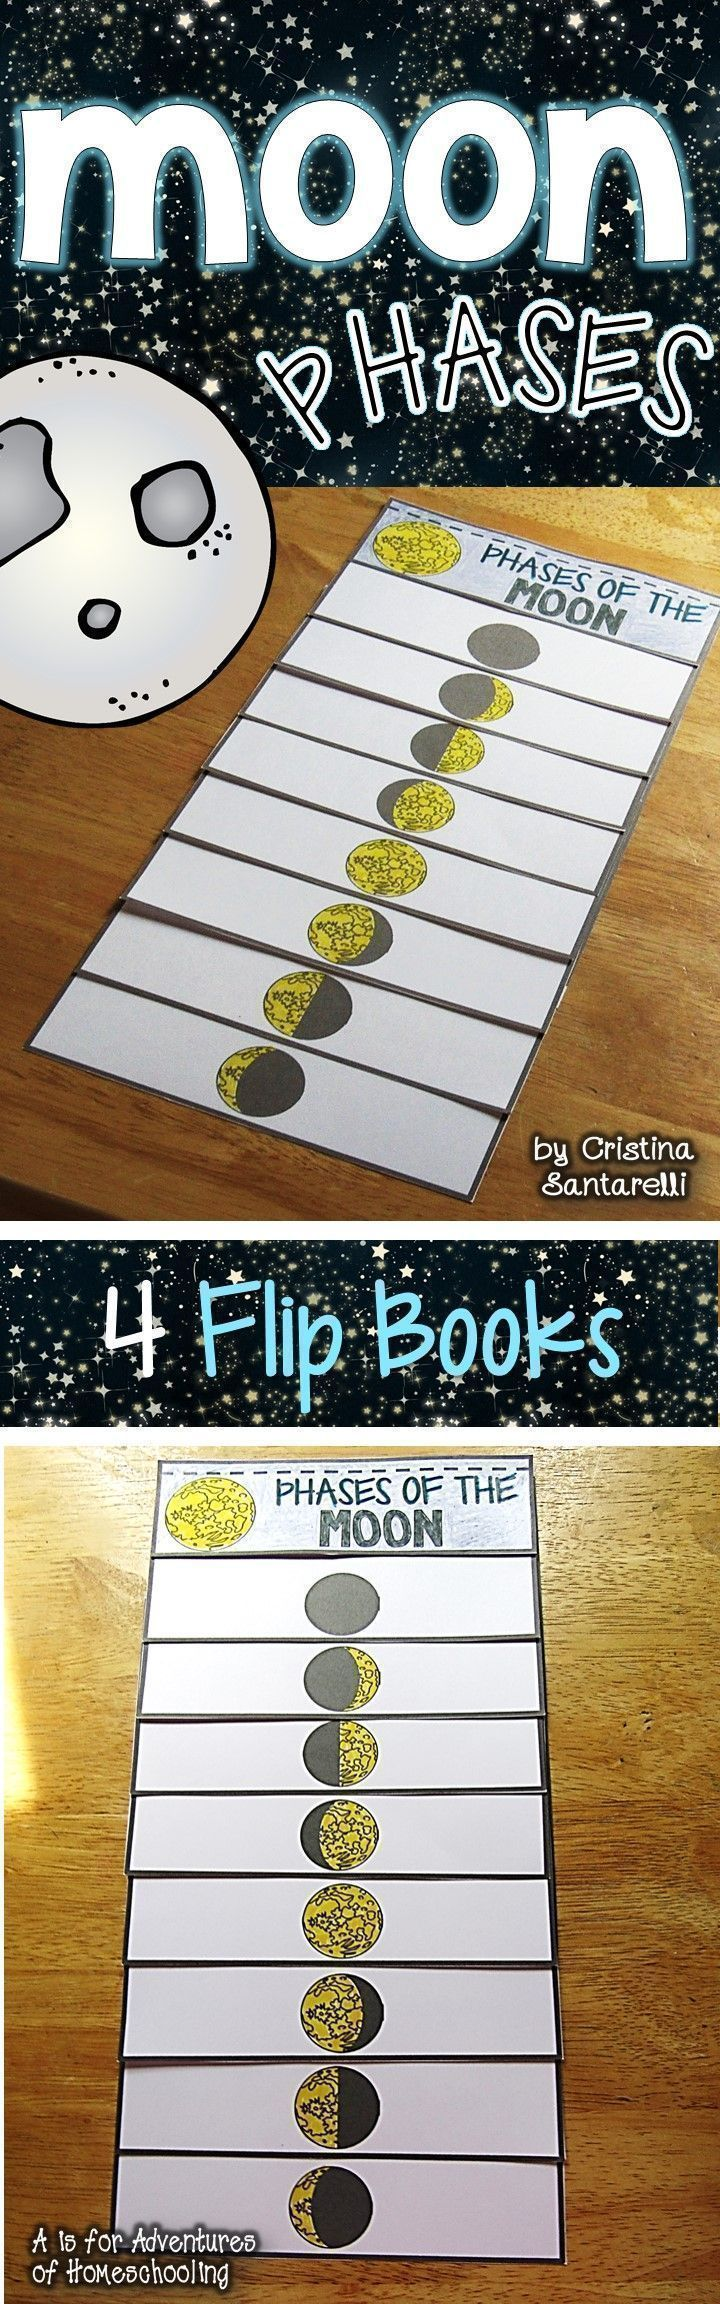 Moon Phases flip booklet features eight phases of the moon in total: new moon, waxing crescent, first quarter, waxing gibbous, full moon,, waning gibbous, last quarter, waning crescent.  The Moon Phases flip book includes 4 versions of the booklet. 1 wher